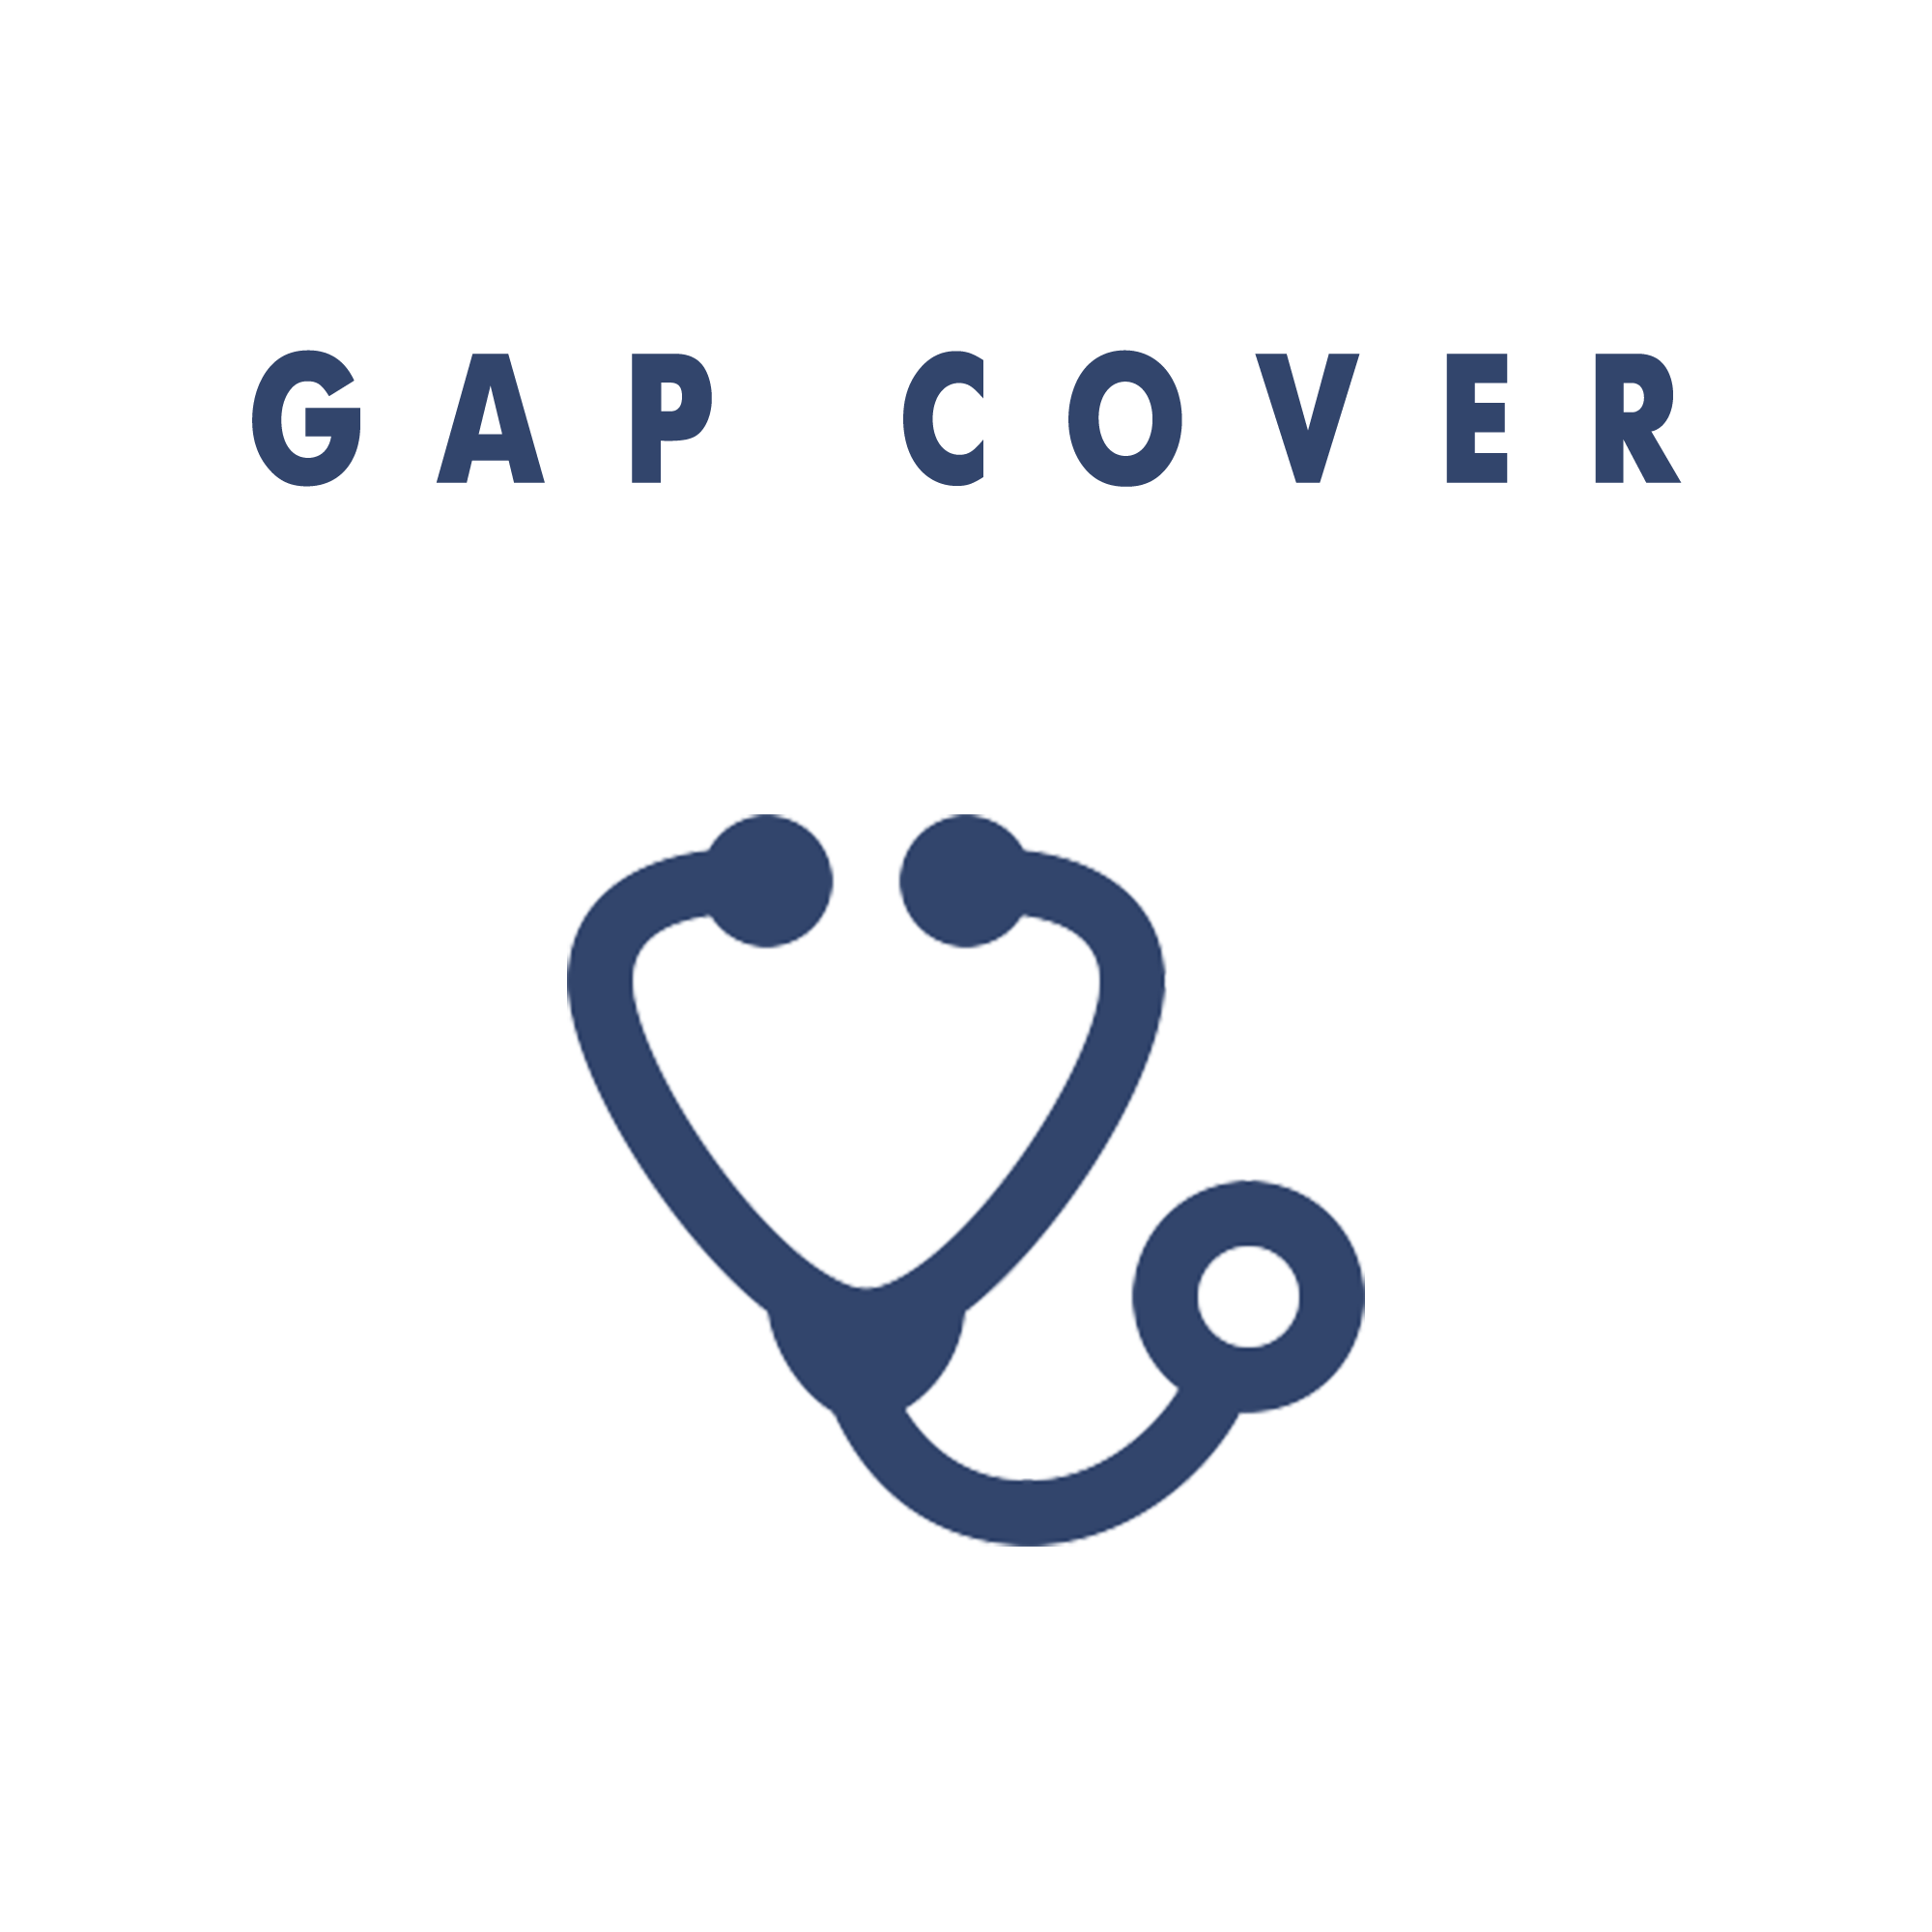 gapcovernew.png